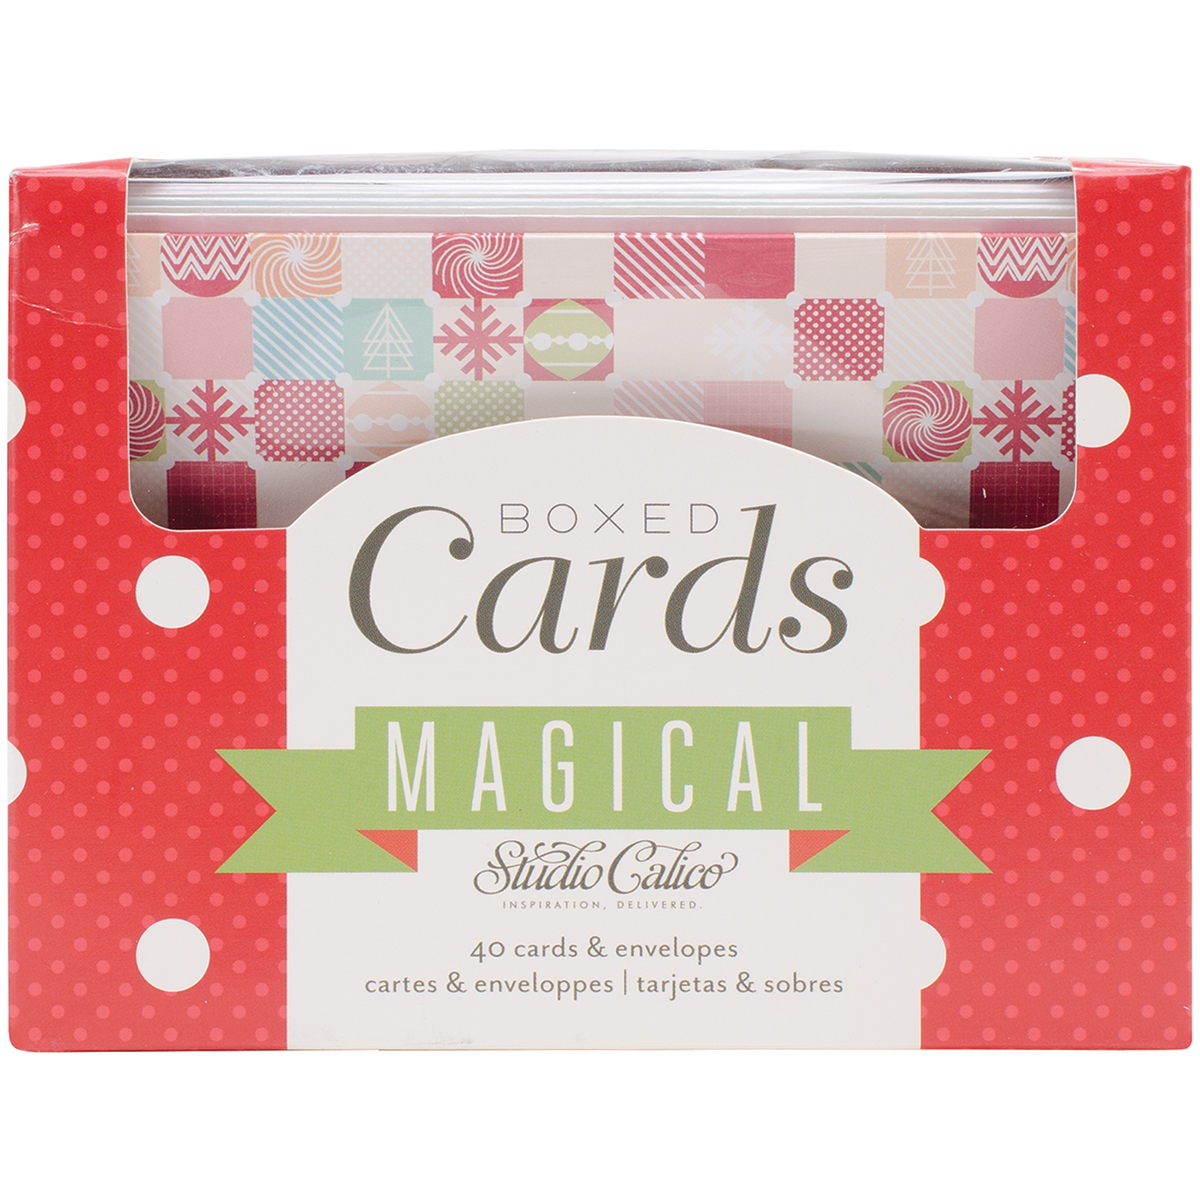 Magical Cards with Envelopes, 40/Pkg, 10 Designs